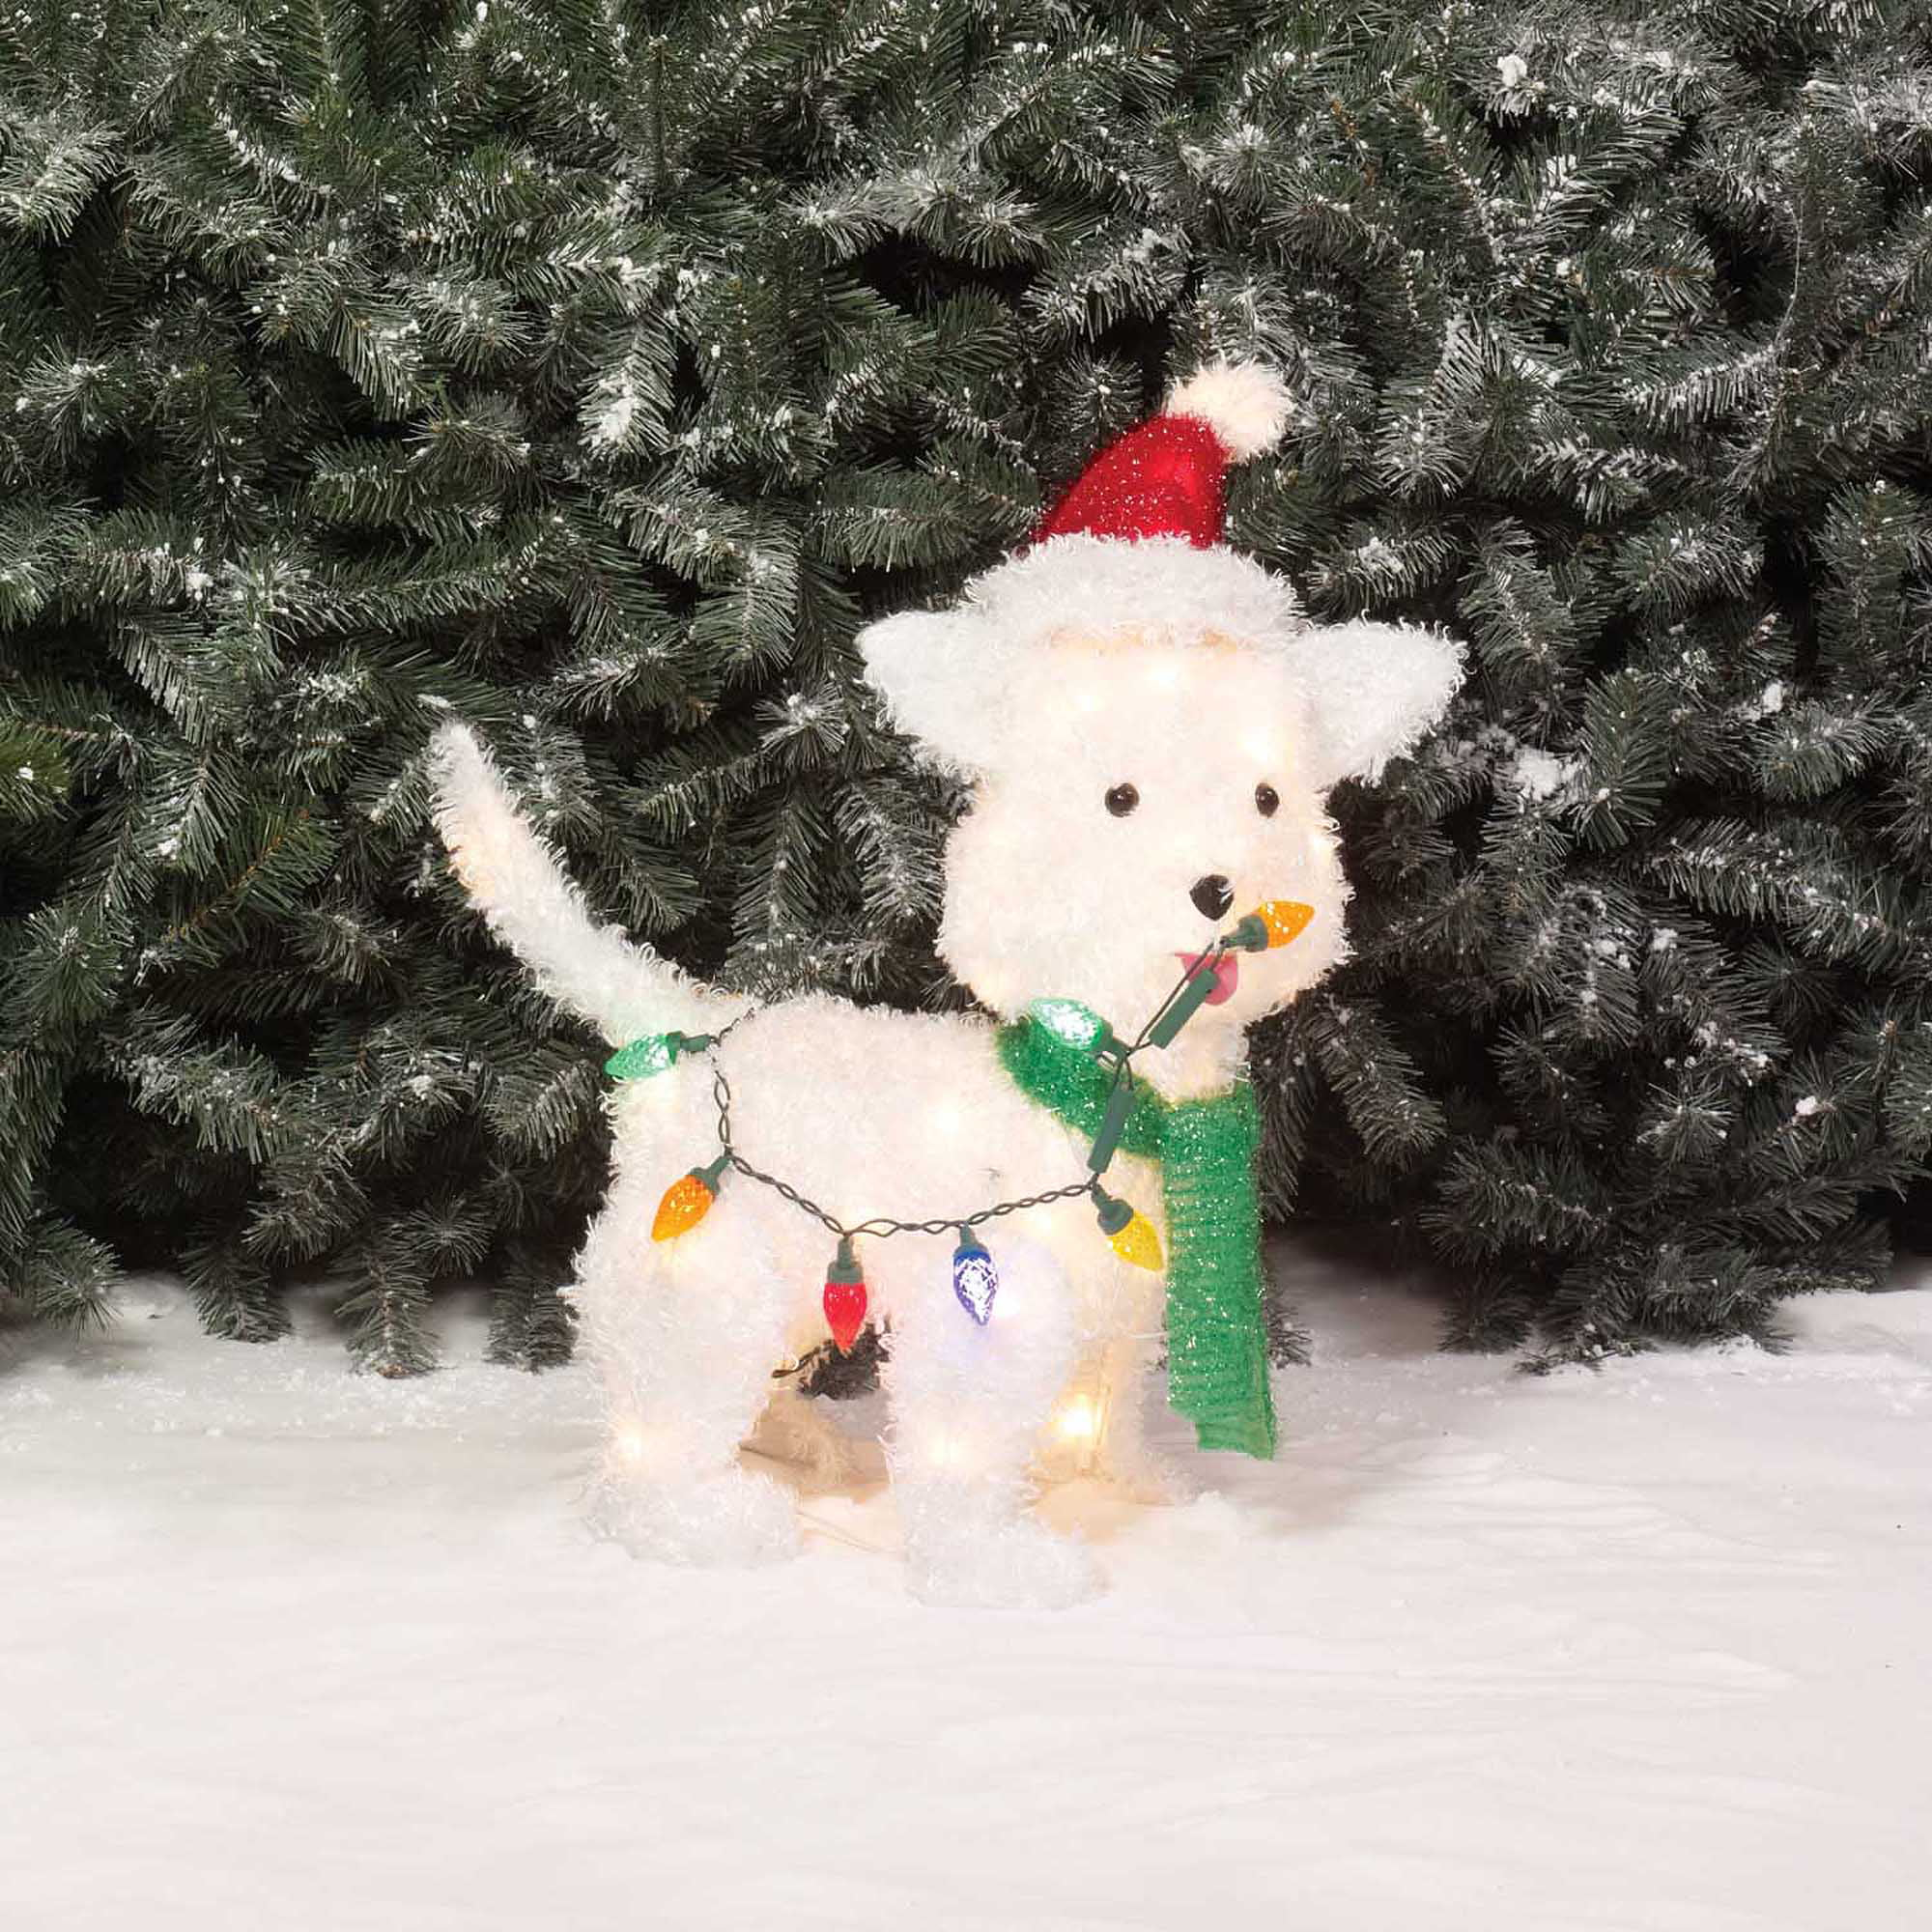 holiday time christmas decor 24 fluffy dog light sculpture walmartcom - Outdoor Lighted Dog Christmas Decorations